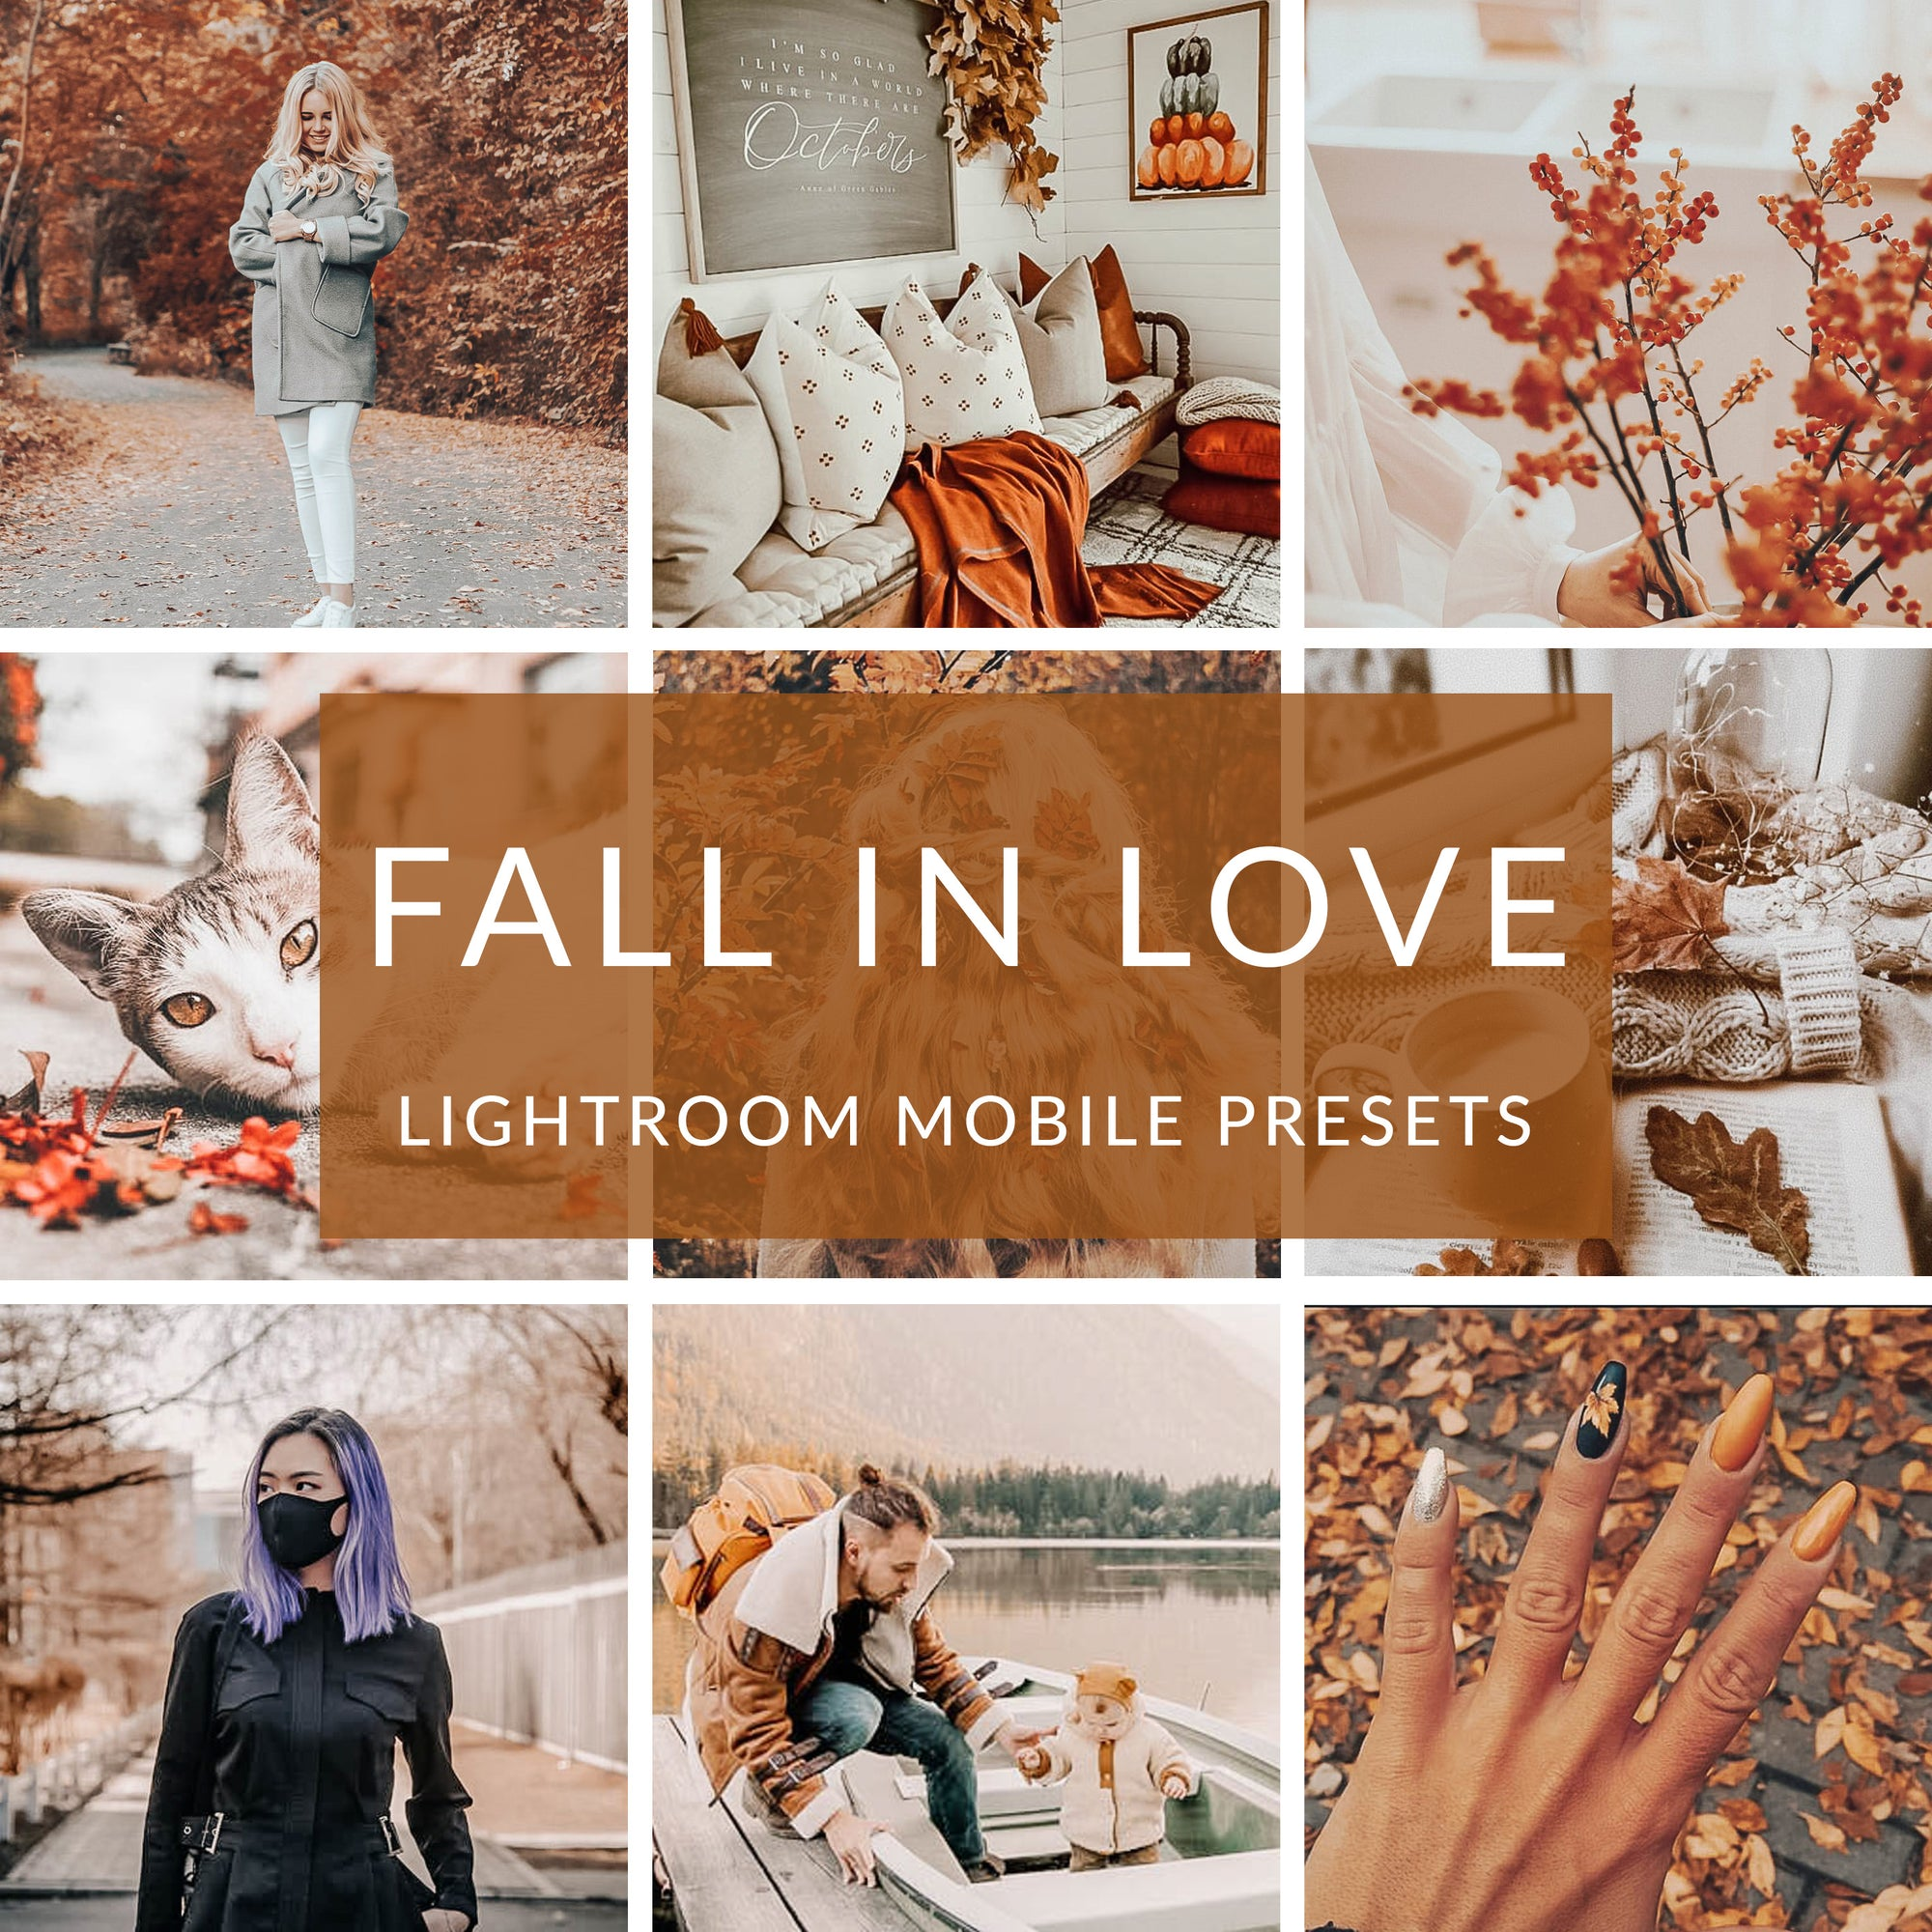 Fall In Love Lightroom Mobile Presets